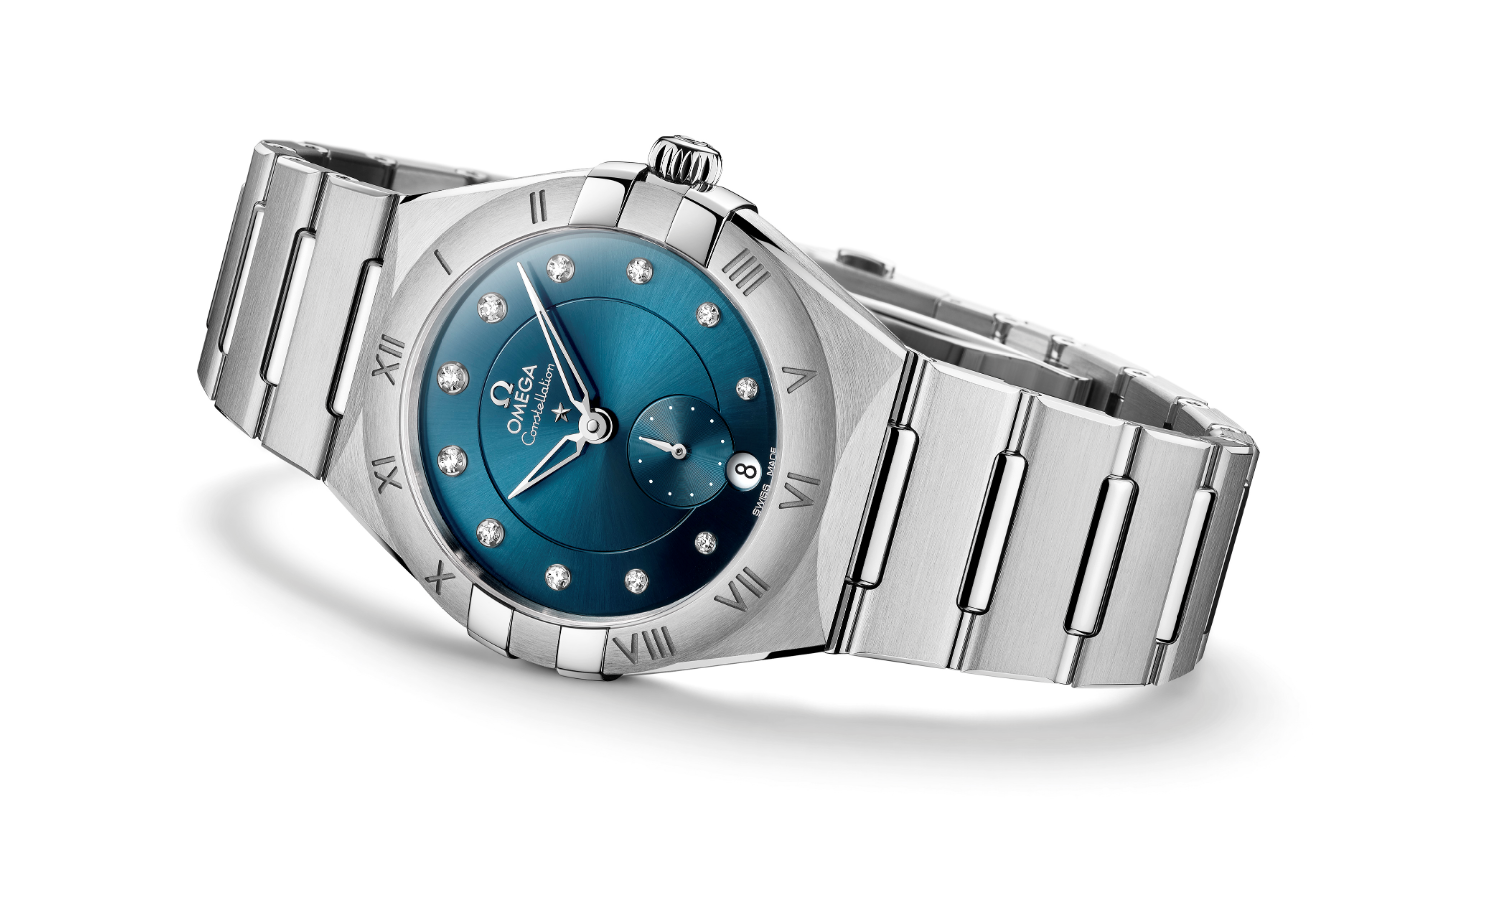 President & CEO of OMEGA Celebrates The Company's Stunning Range Of Novelty Pieces For 2021